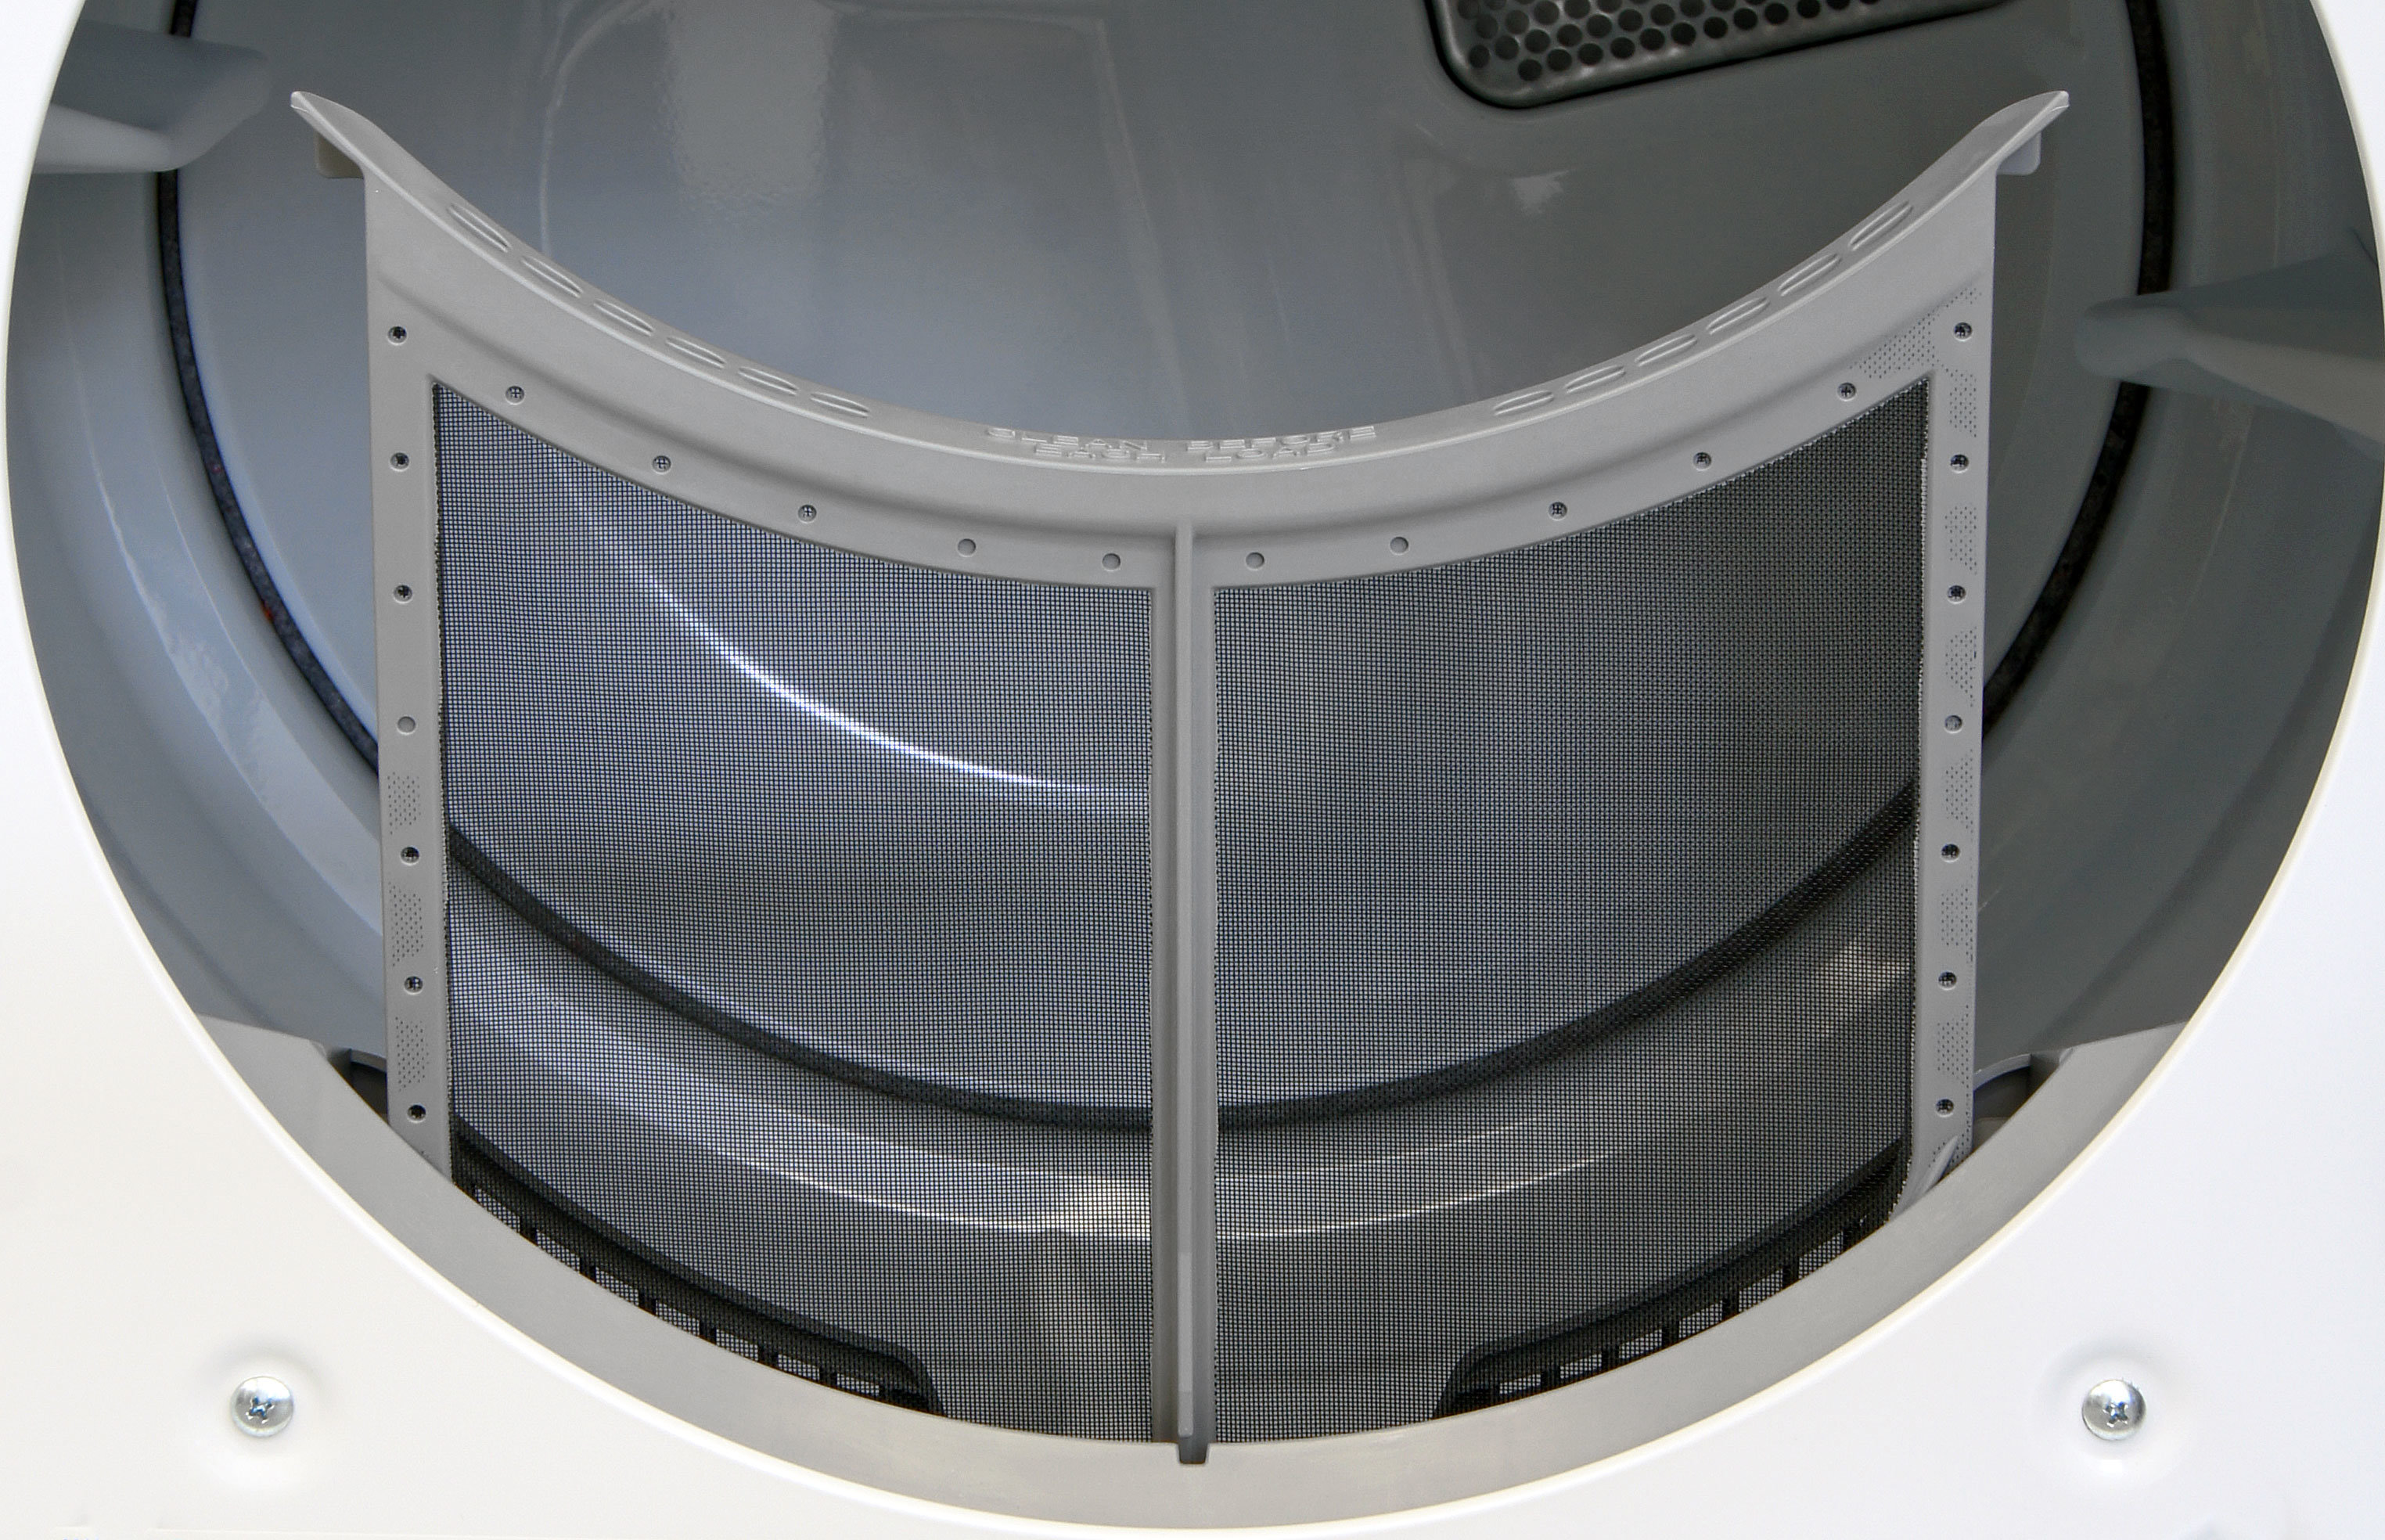 The Maytag Maxima MED5100DW has a standard lint trap. What more is there to say?